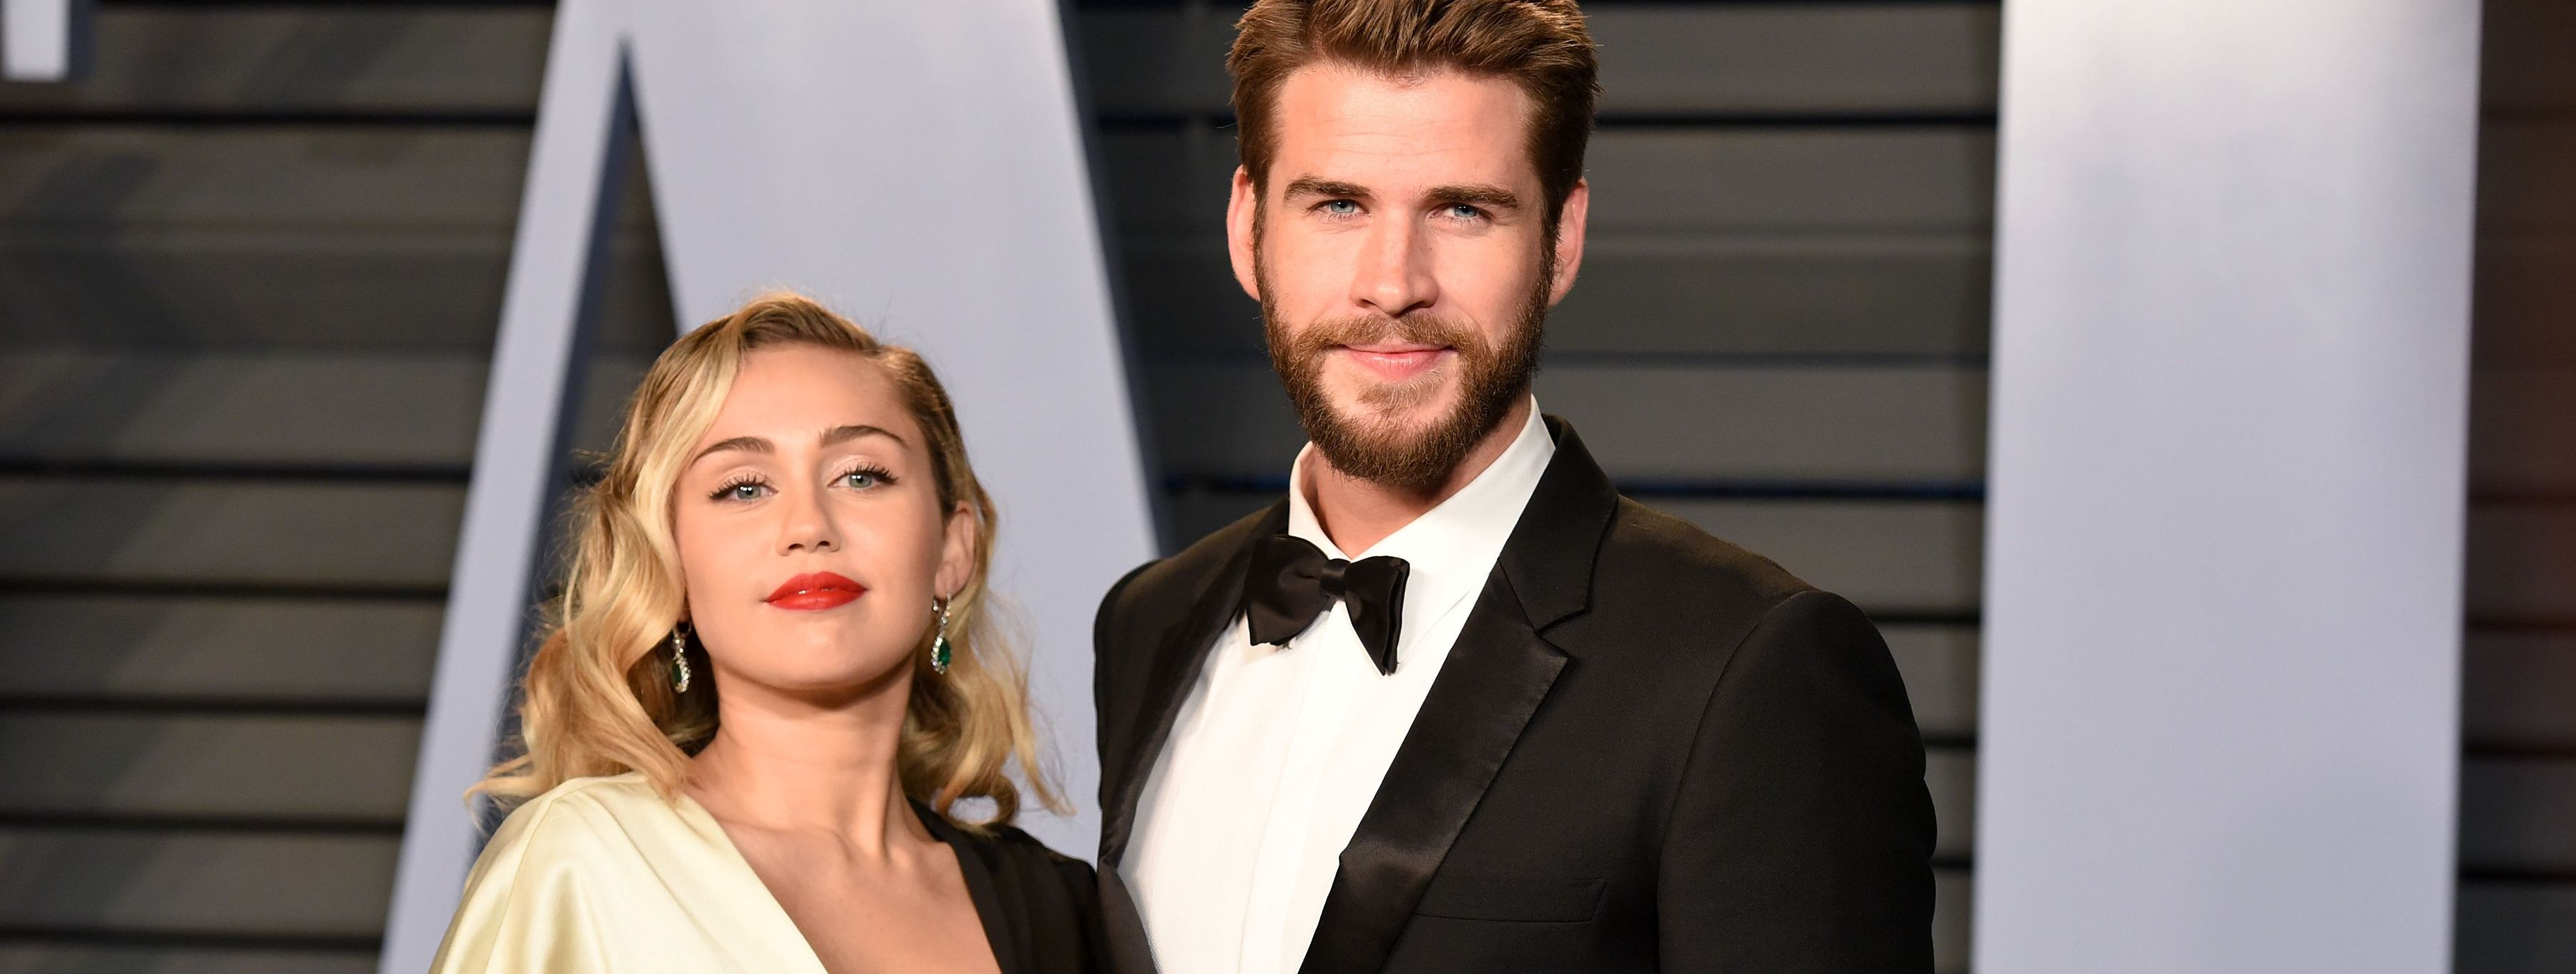 Miley Cyrus and Liam Hemsworth Donate $500K to Malibu Fire Victims After Losing Their Home